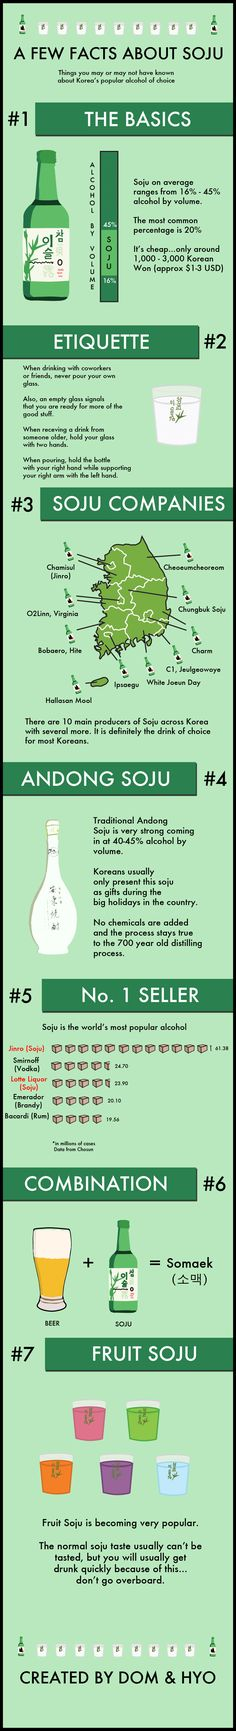 Some Interesting Facts About Soju